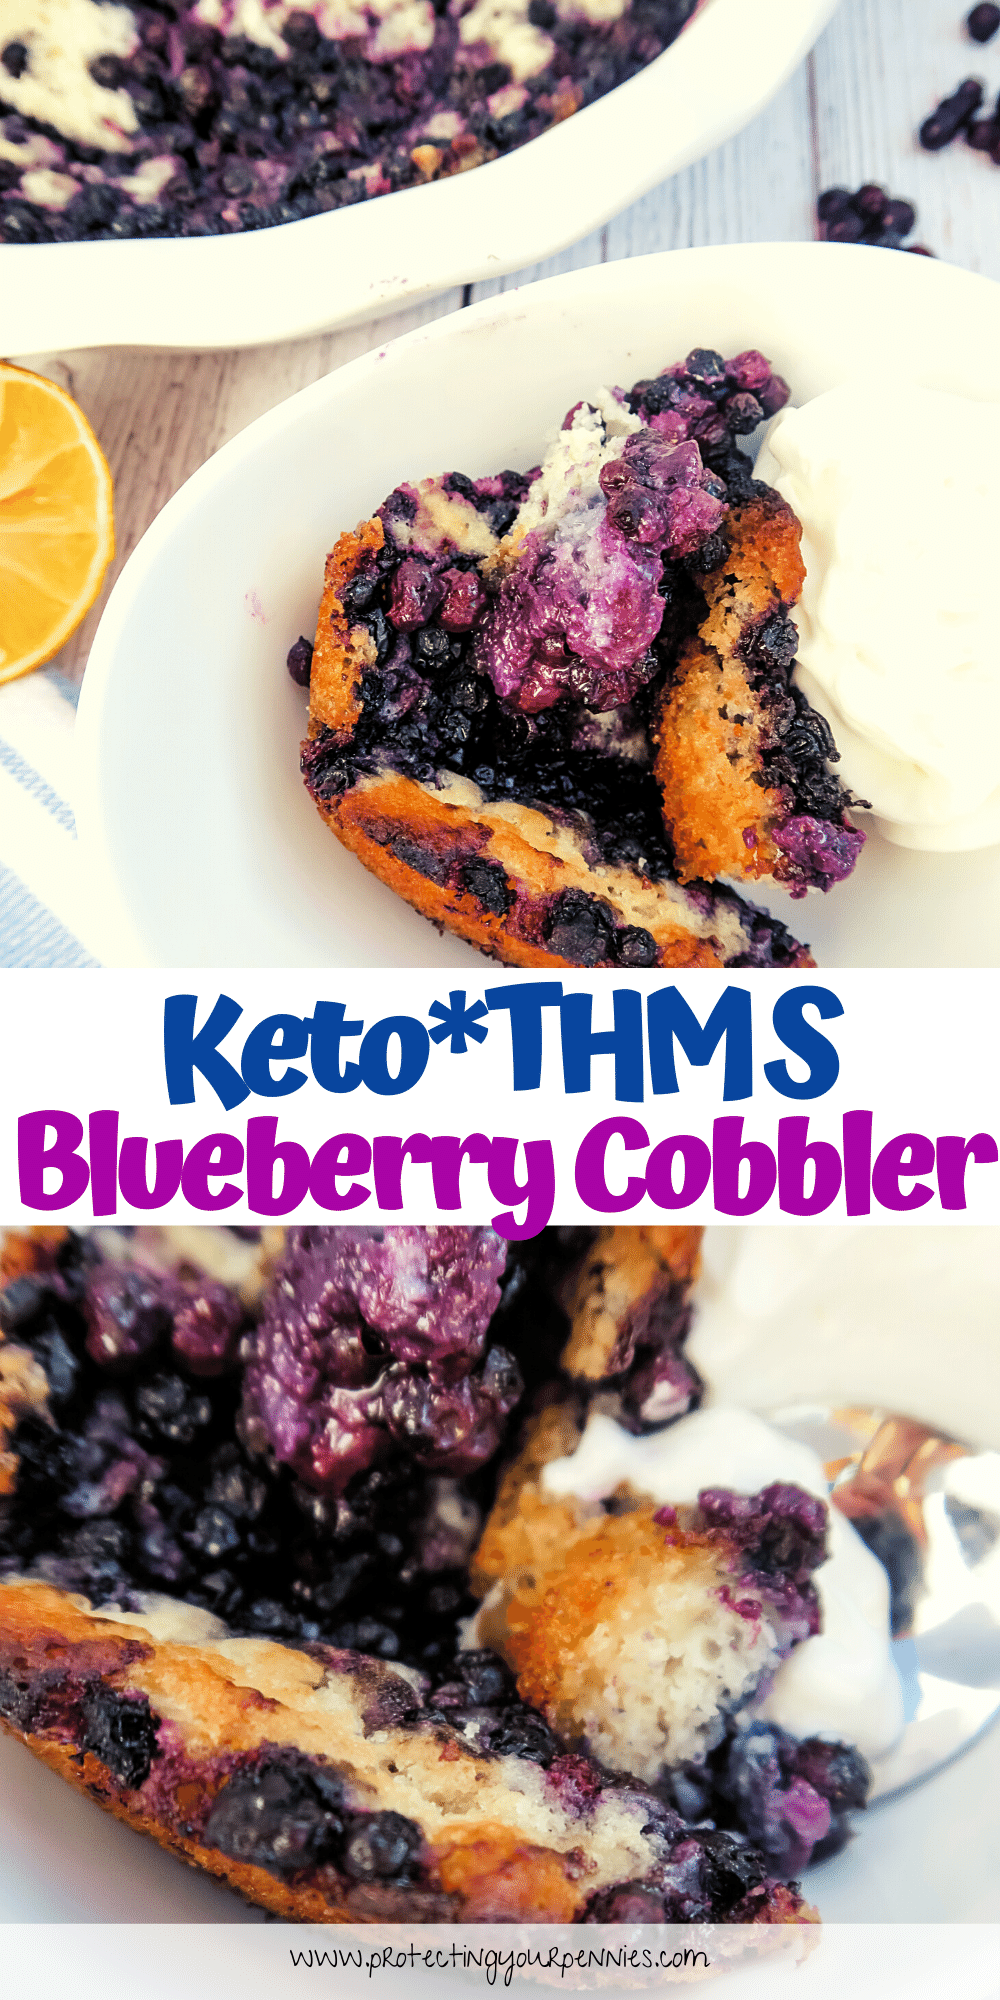 Keto - THM S Blueberry Cobbler